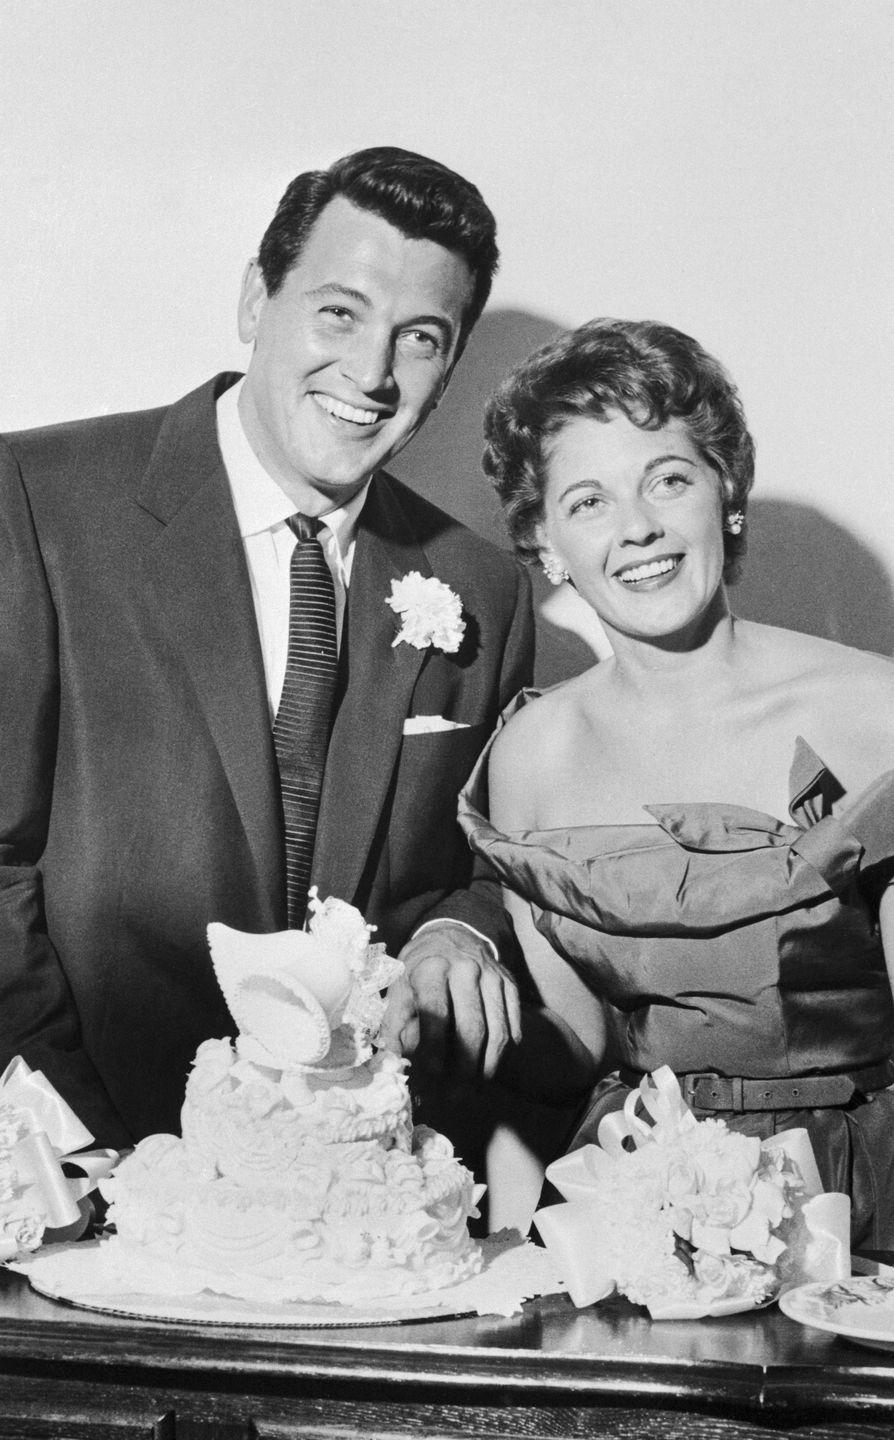 <p>On November 9, actor Rock Hudson, 29, married Phyllis Gates, 26, who was the secretary of his agent. But Gates filed for divorce in April 1958, citing mental cruelty. Neither remarried. It wasn't until 1985 that Hudson came out as a gay man when he simultaneously shared his AIDS diagnosis.</p>